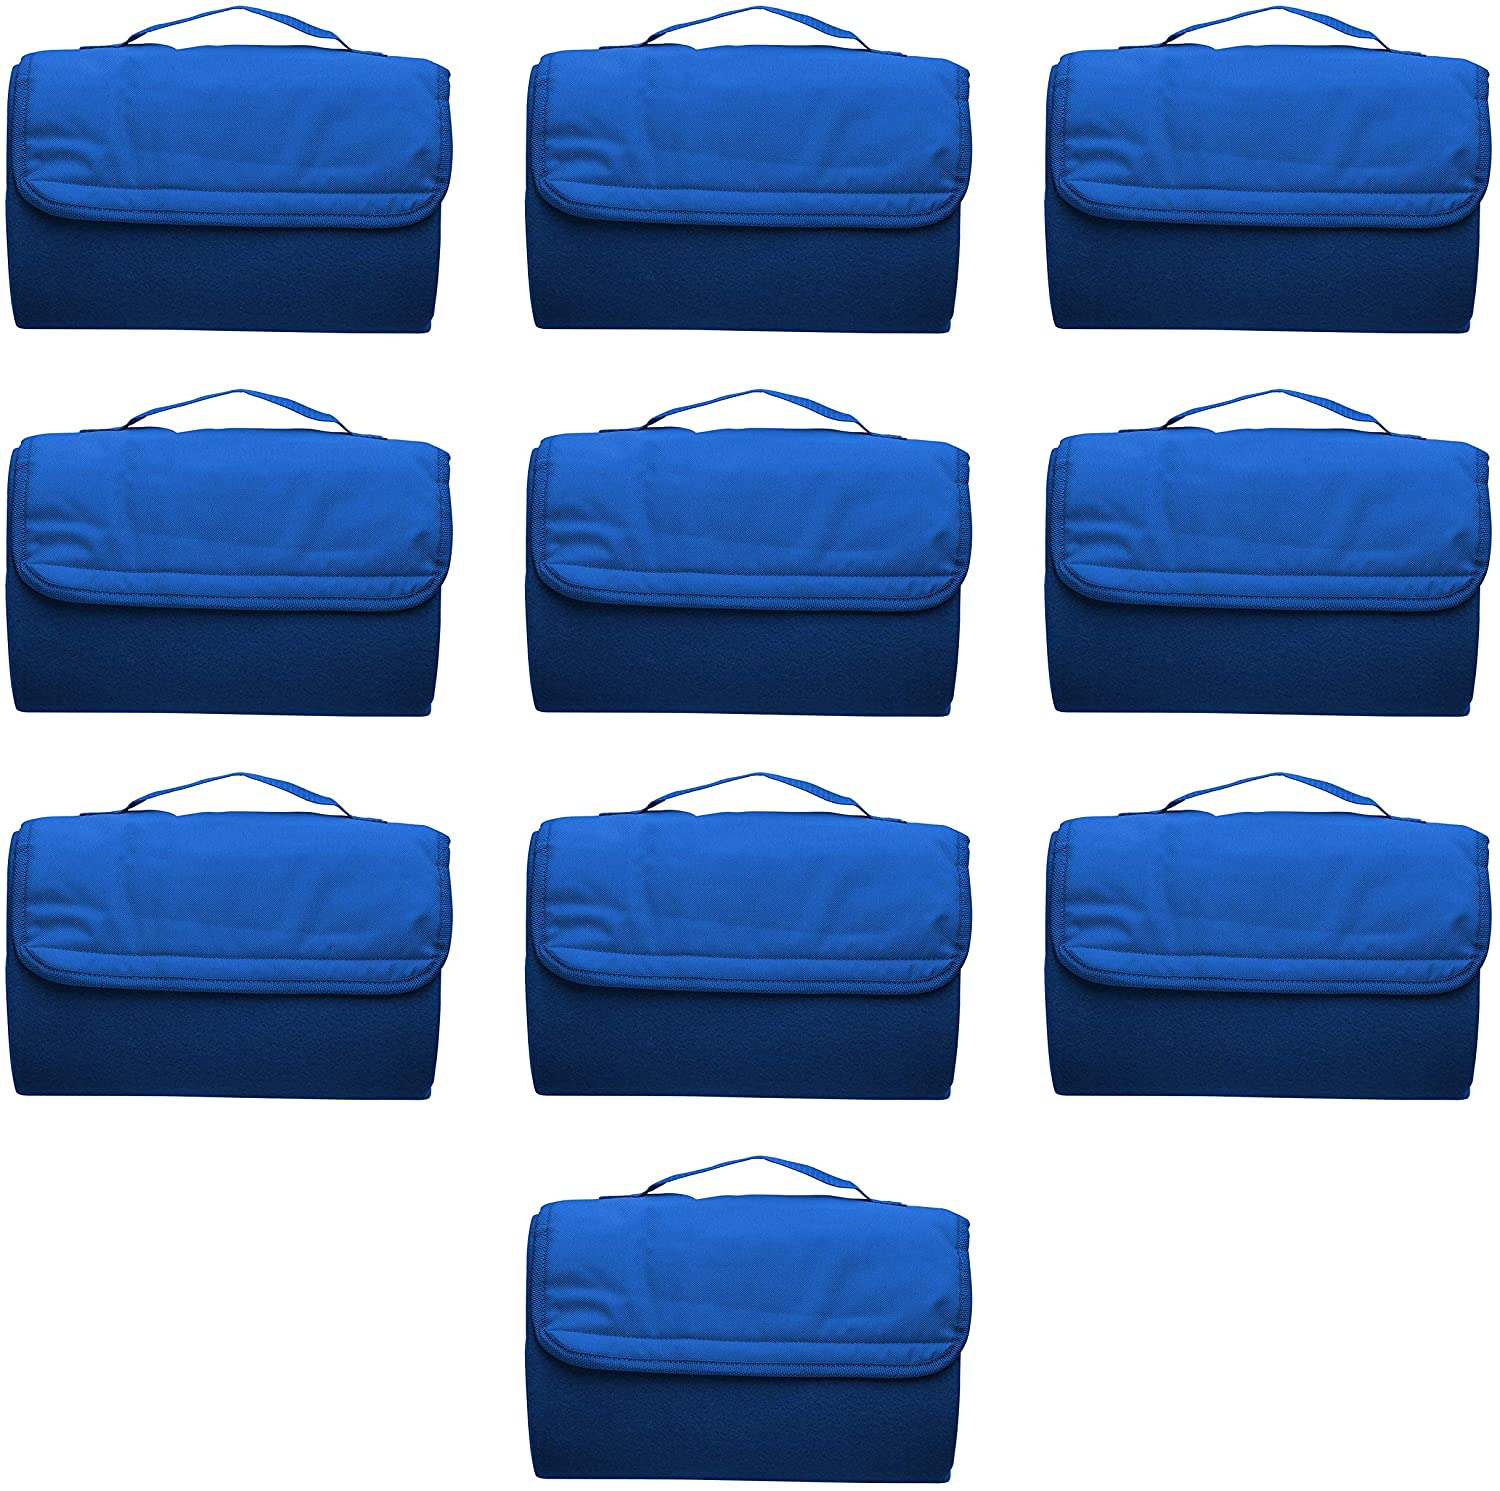 Roll Up Picnic Blankets - 10 Pack - Great Outdoor Blanket for Camping, Camp, Sports - Blue